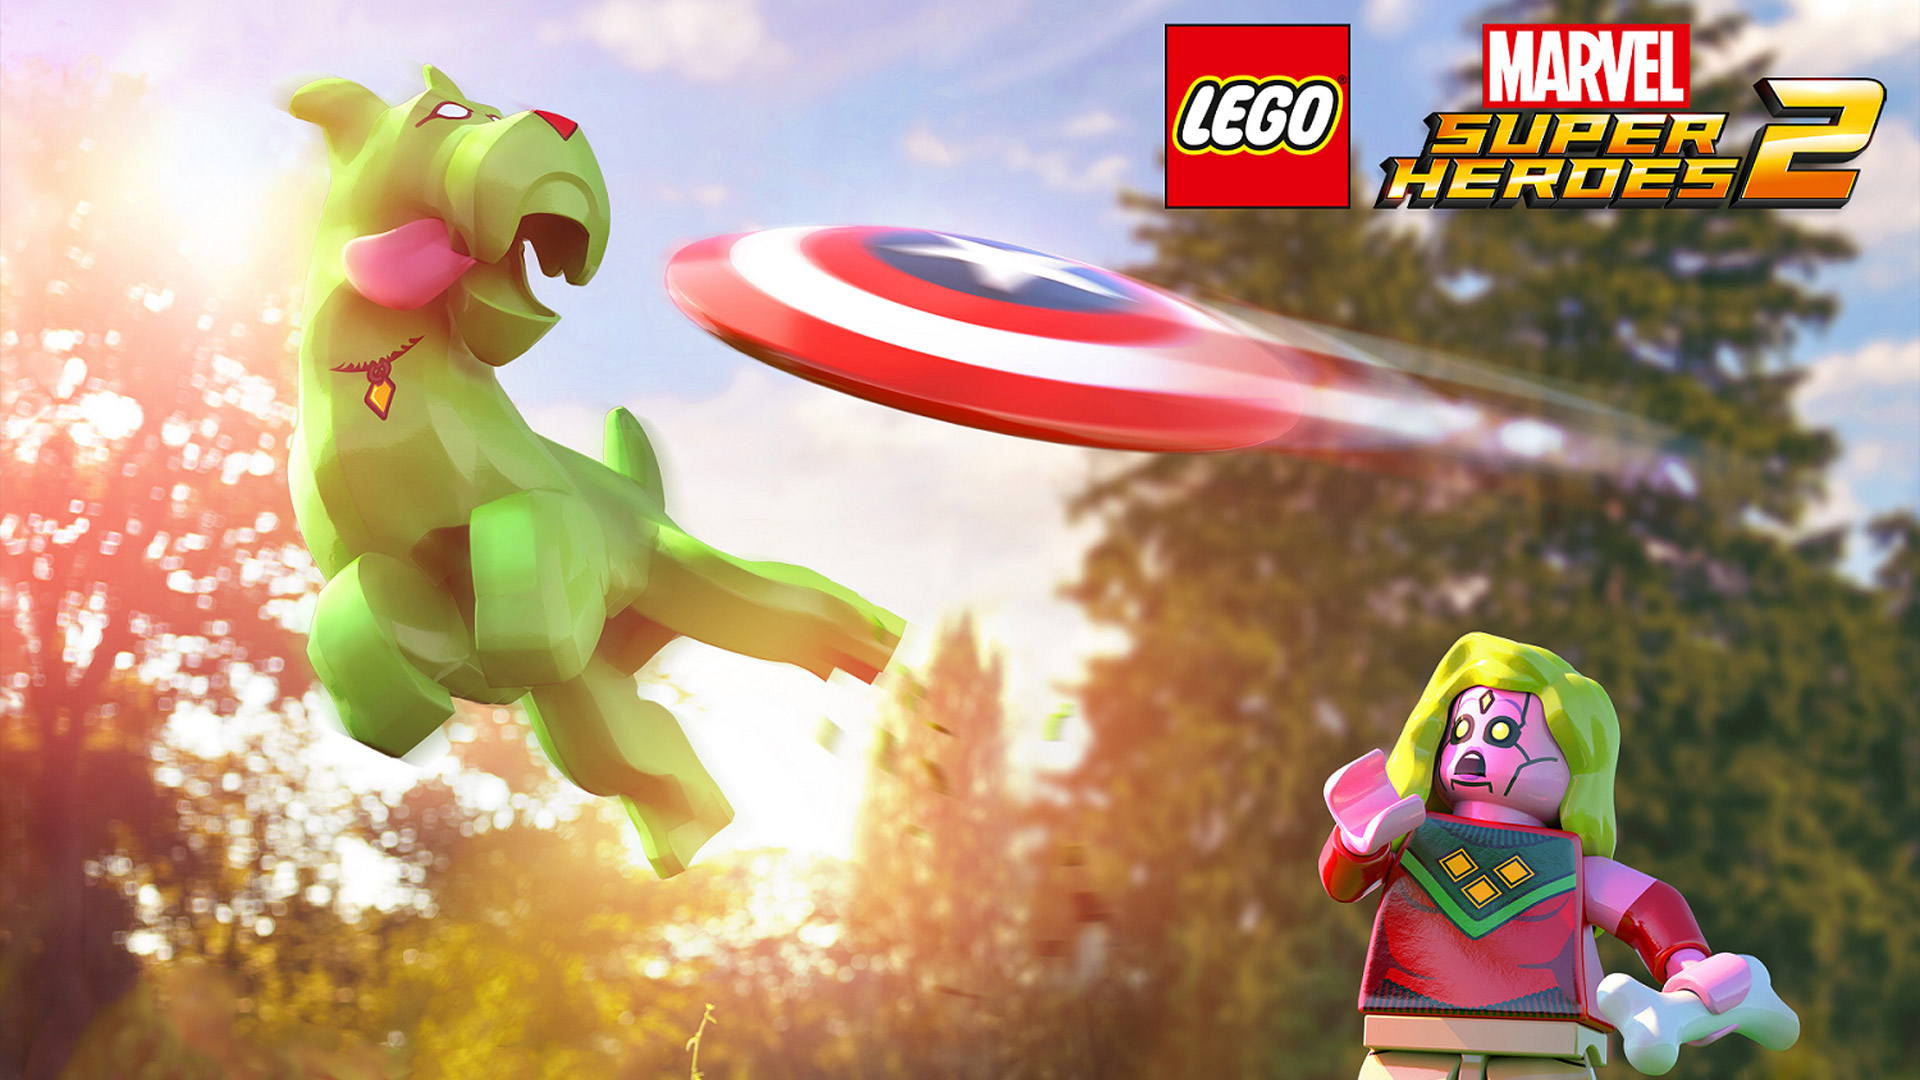 Free Lego Marvel Super Heroes 2 Wallpaper in 1920x1080